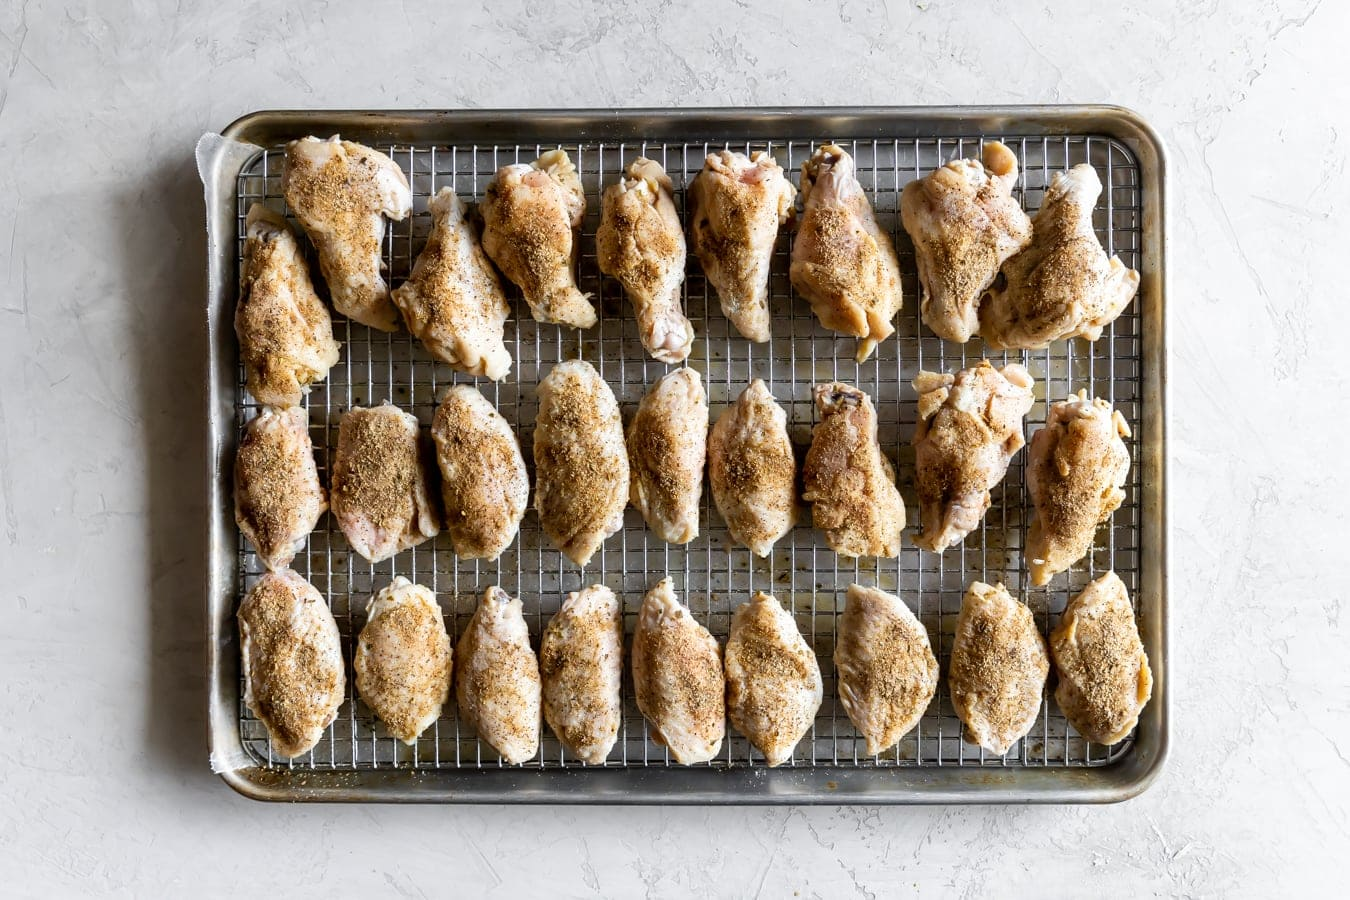 chicken wings on a wire rack on a baking sheet before baking in the oven